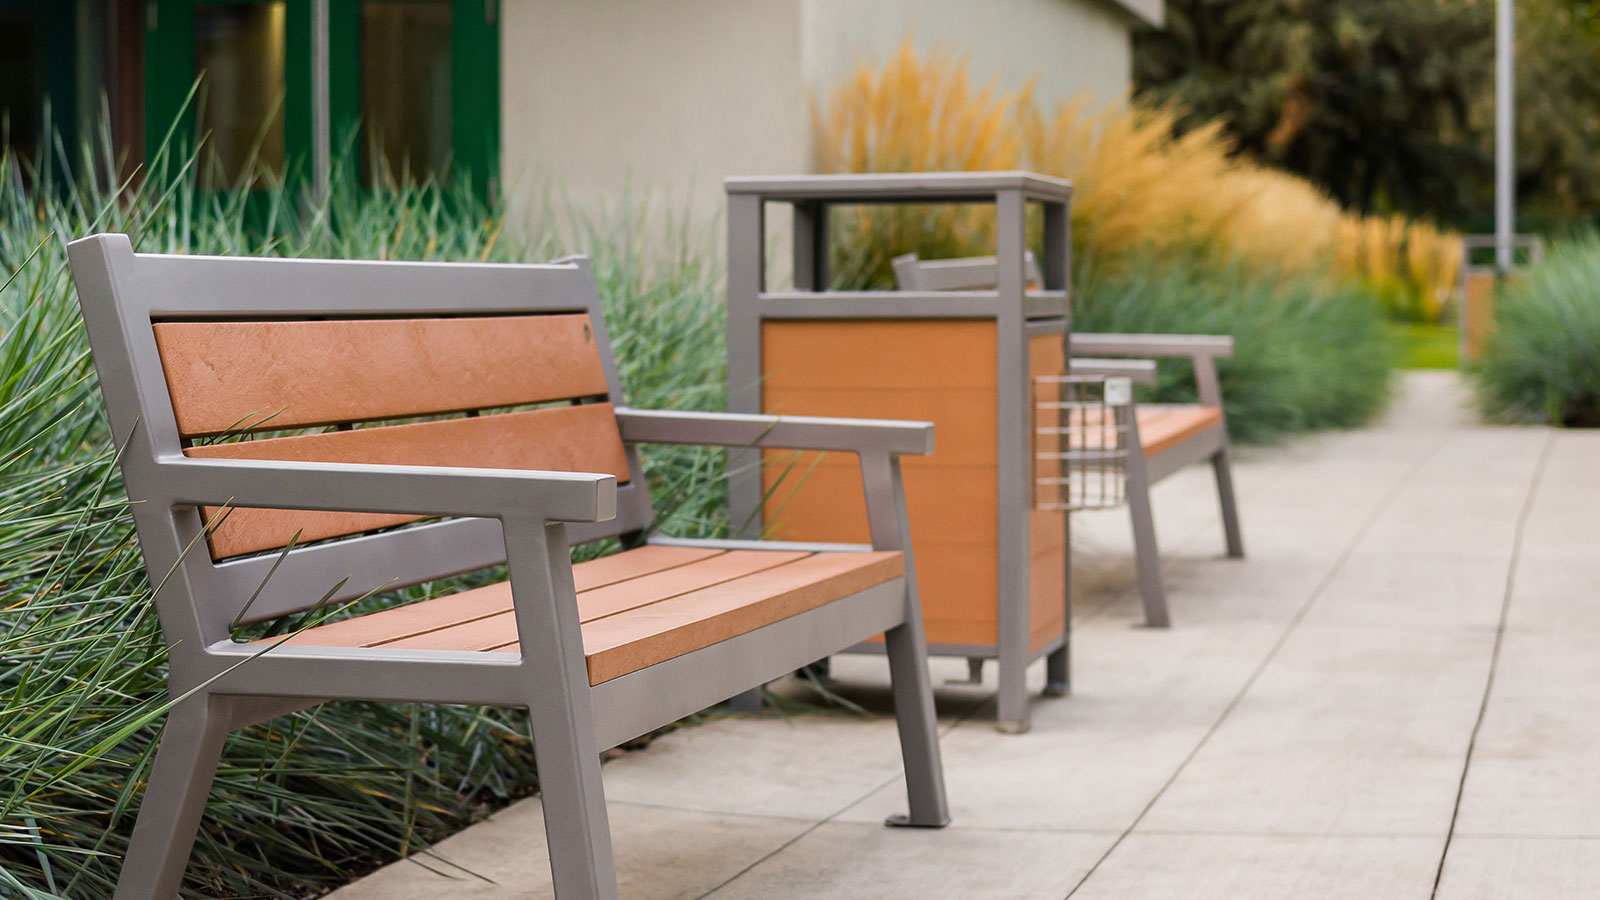 Park Benches and Chairs